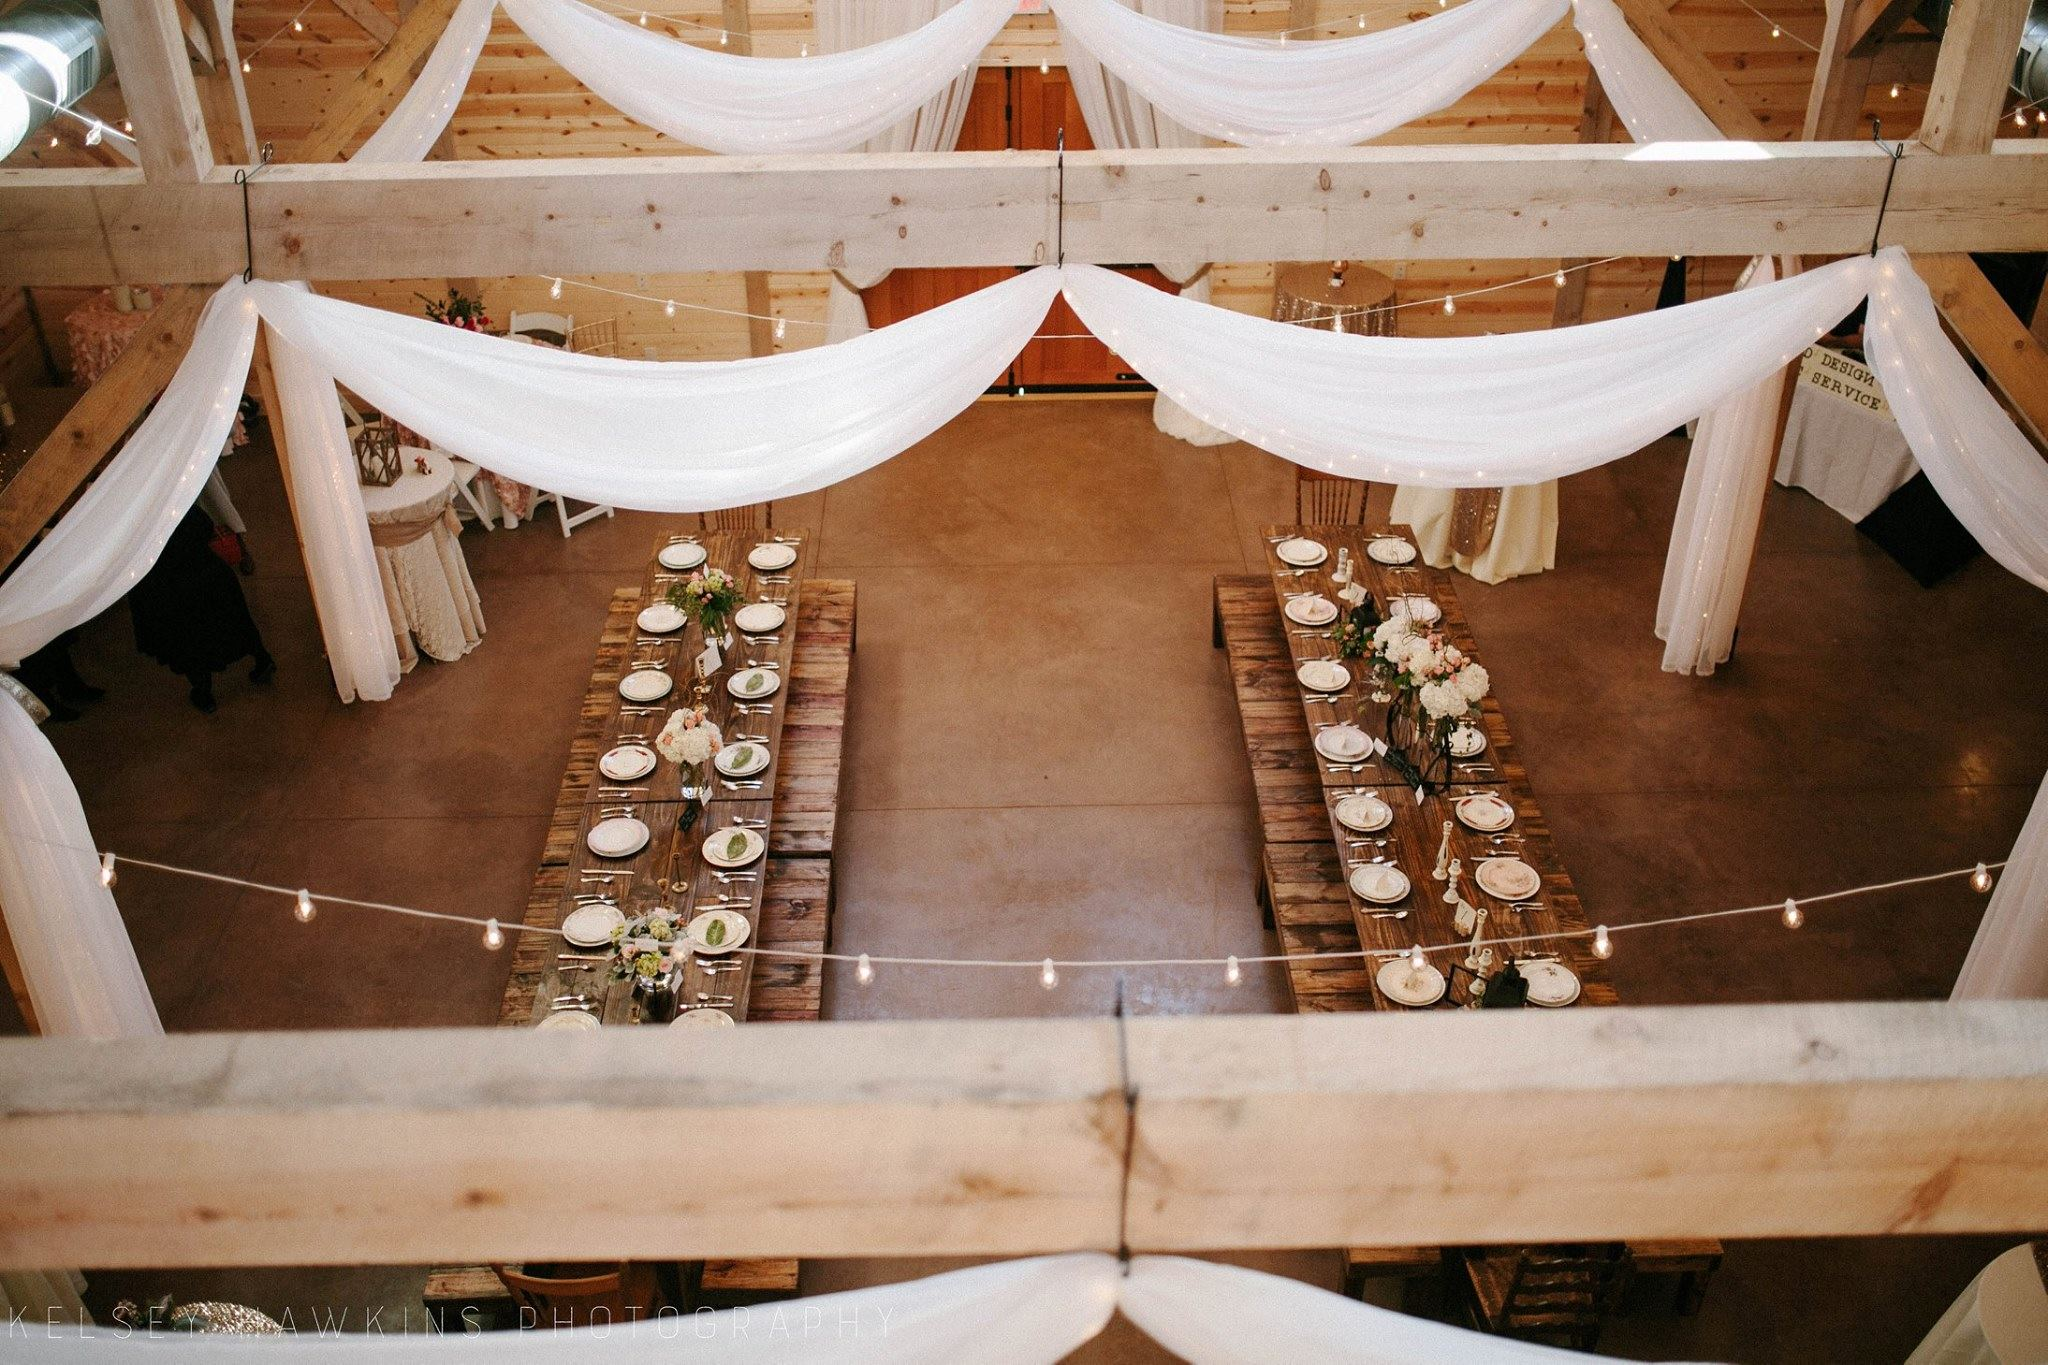 Blessing Barn Wedding and Event Venue - 6